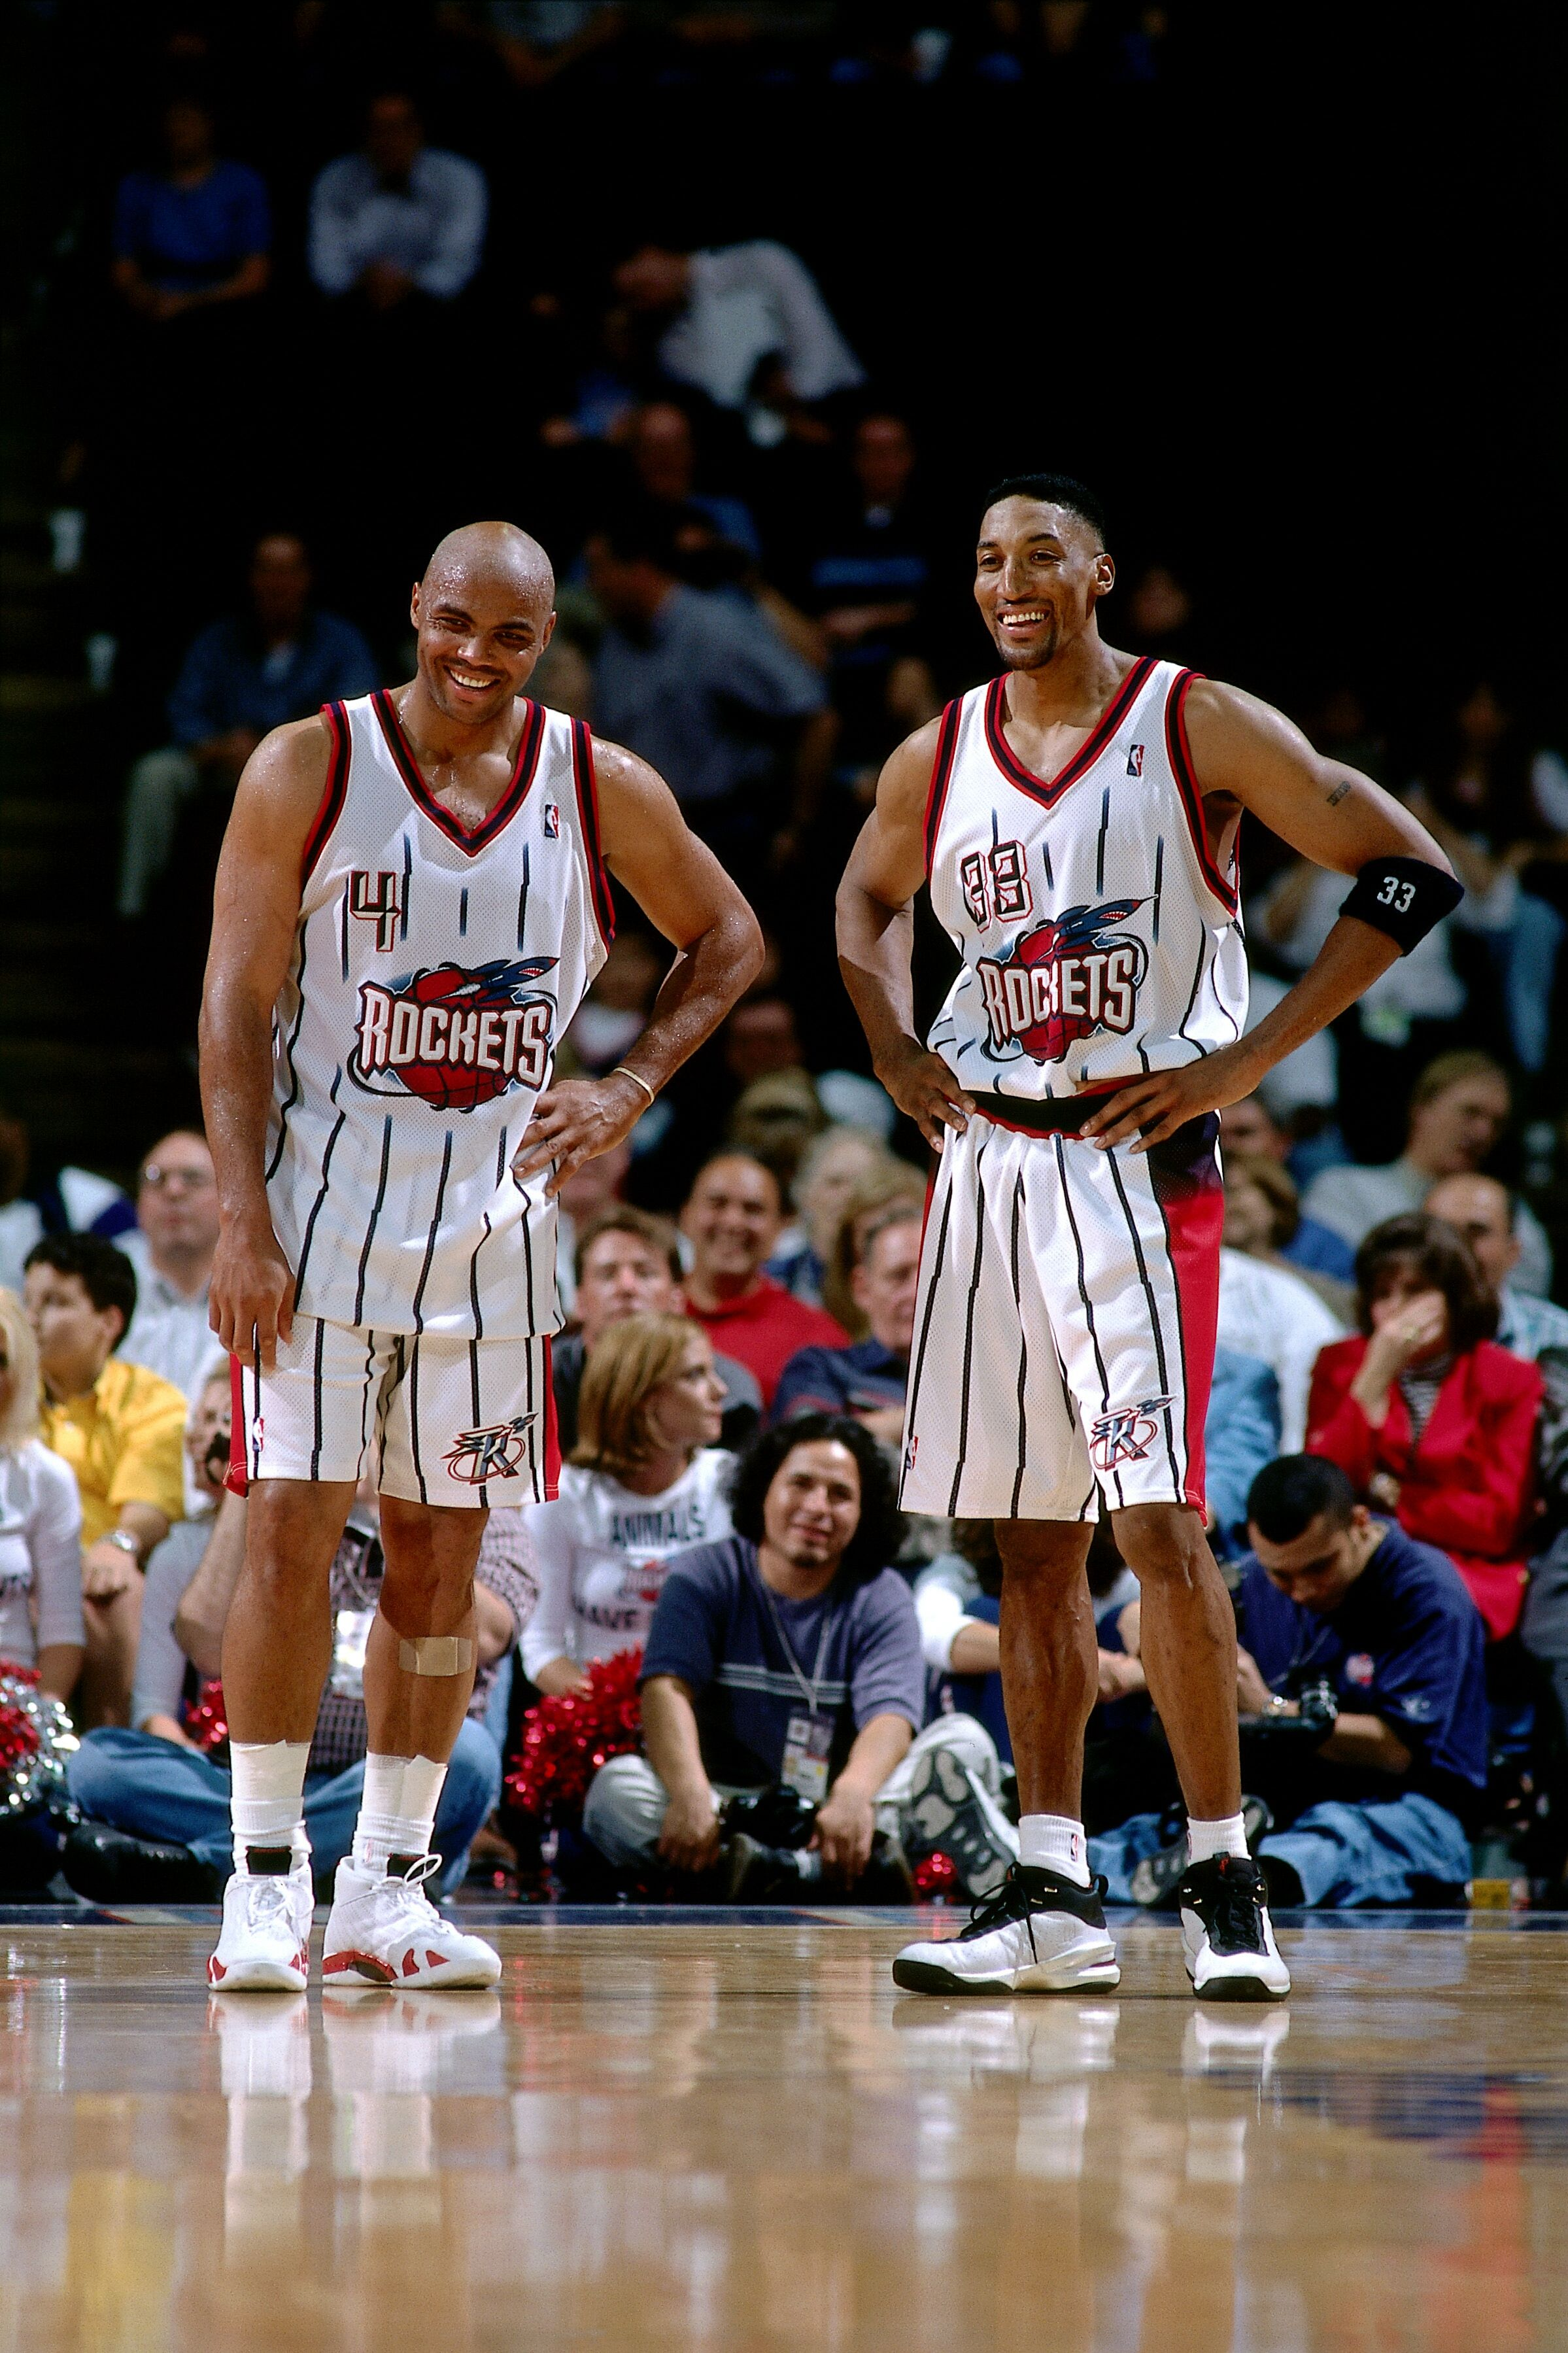 brand new d9bd9 ef68d The Official Site of the | Classic Rockets Photos | Nba ...